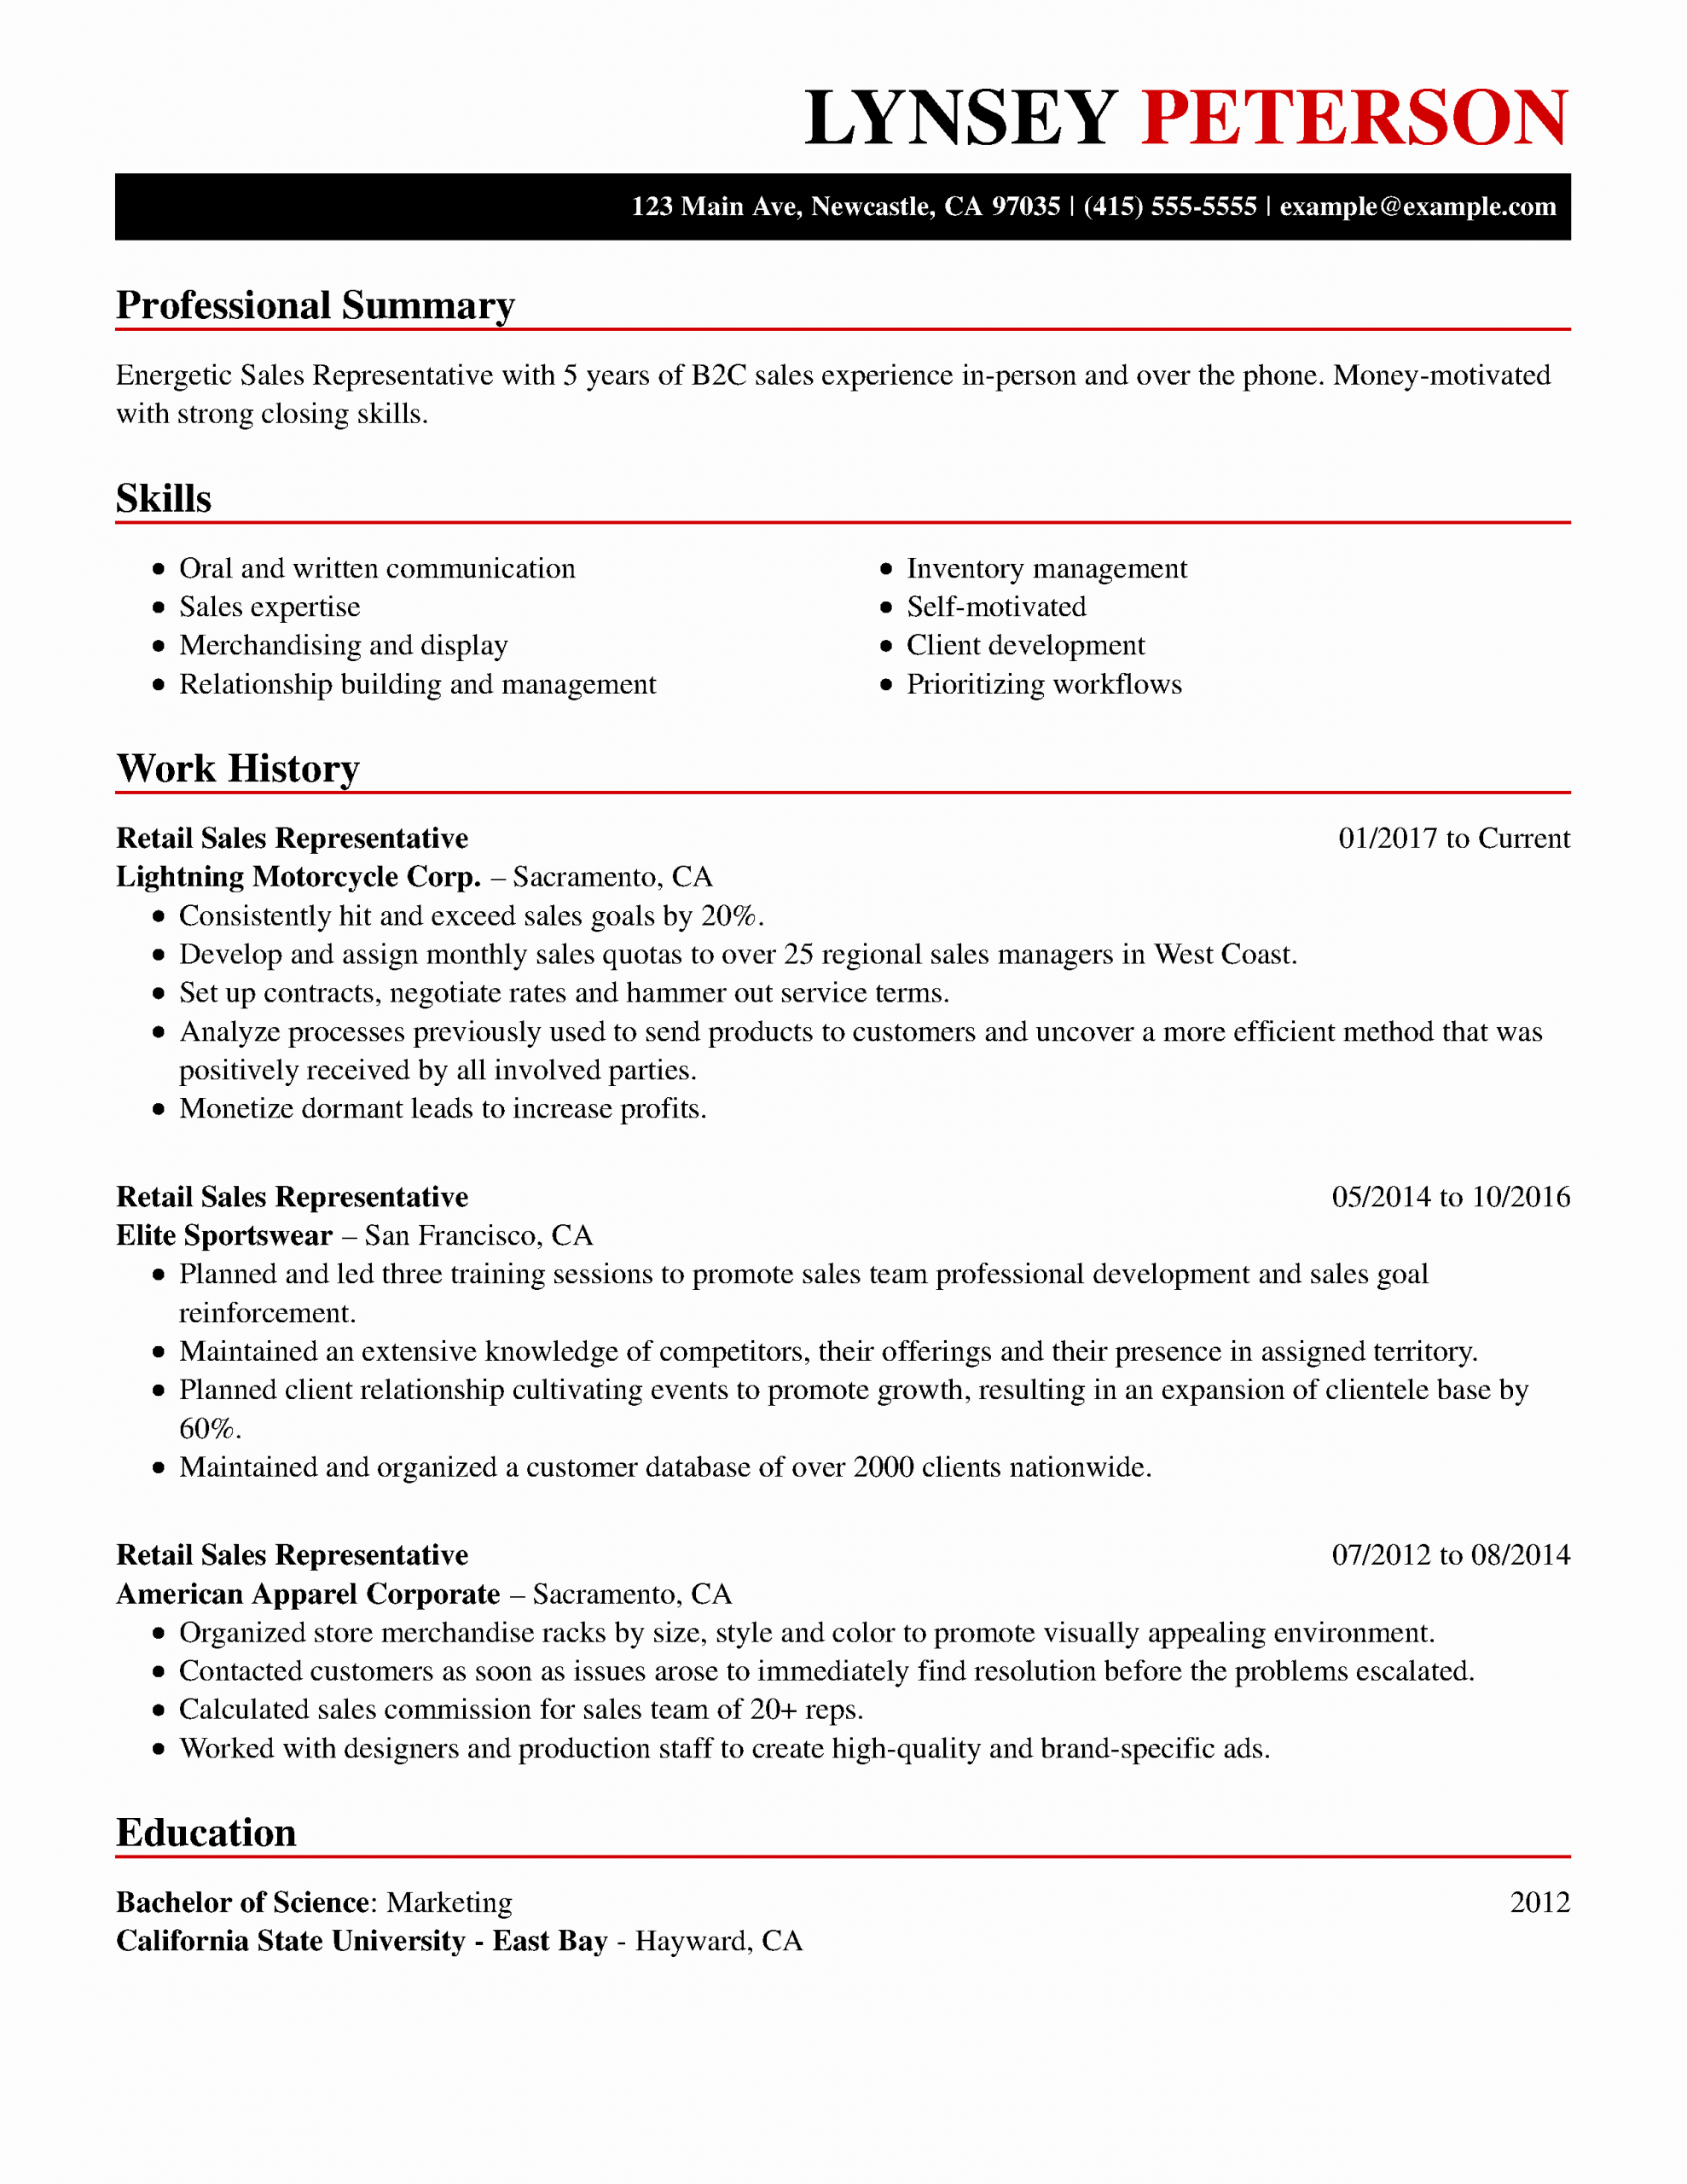 Strong Resume Headline Examples Fresh 30 Resume Examples View By Industry Job Title Professional Resume Examples Resume Skills Good Resume Examples